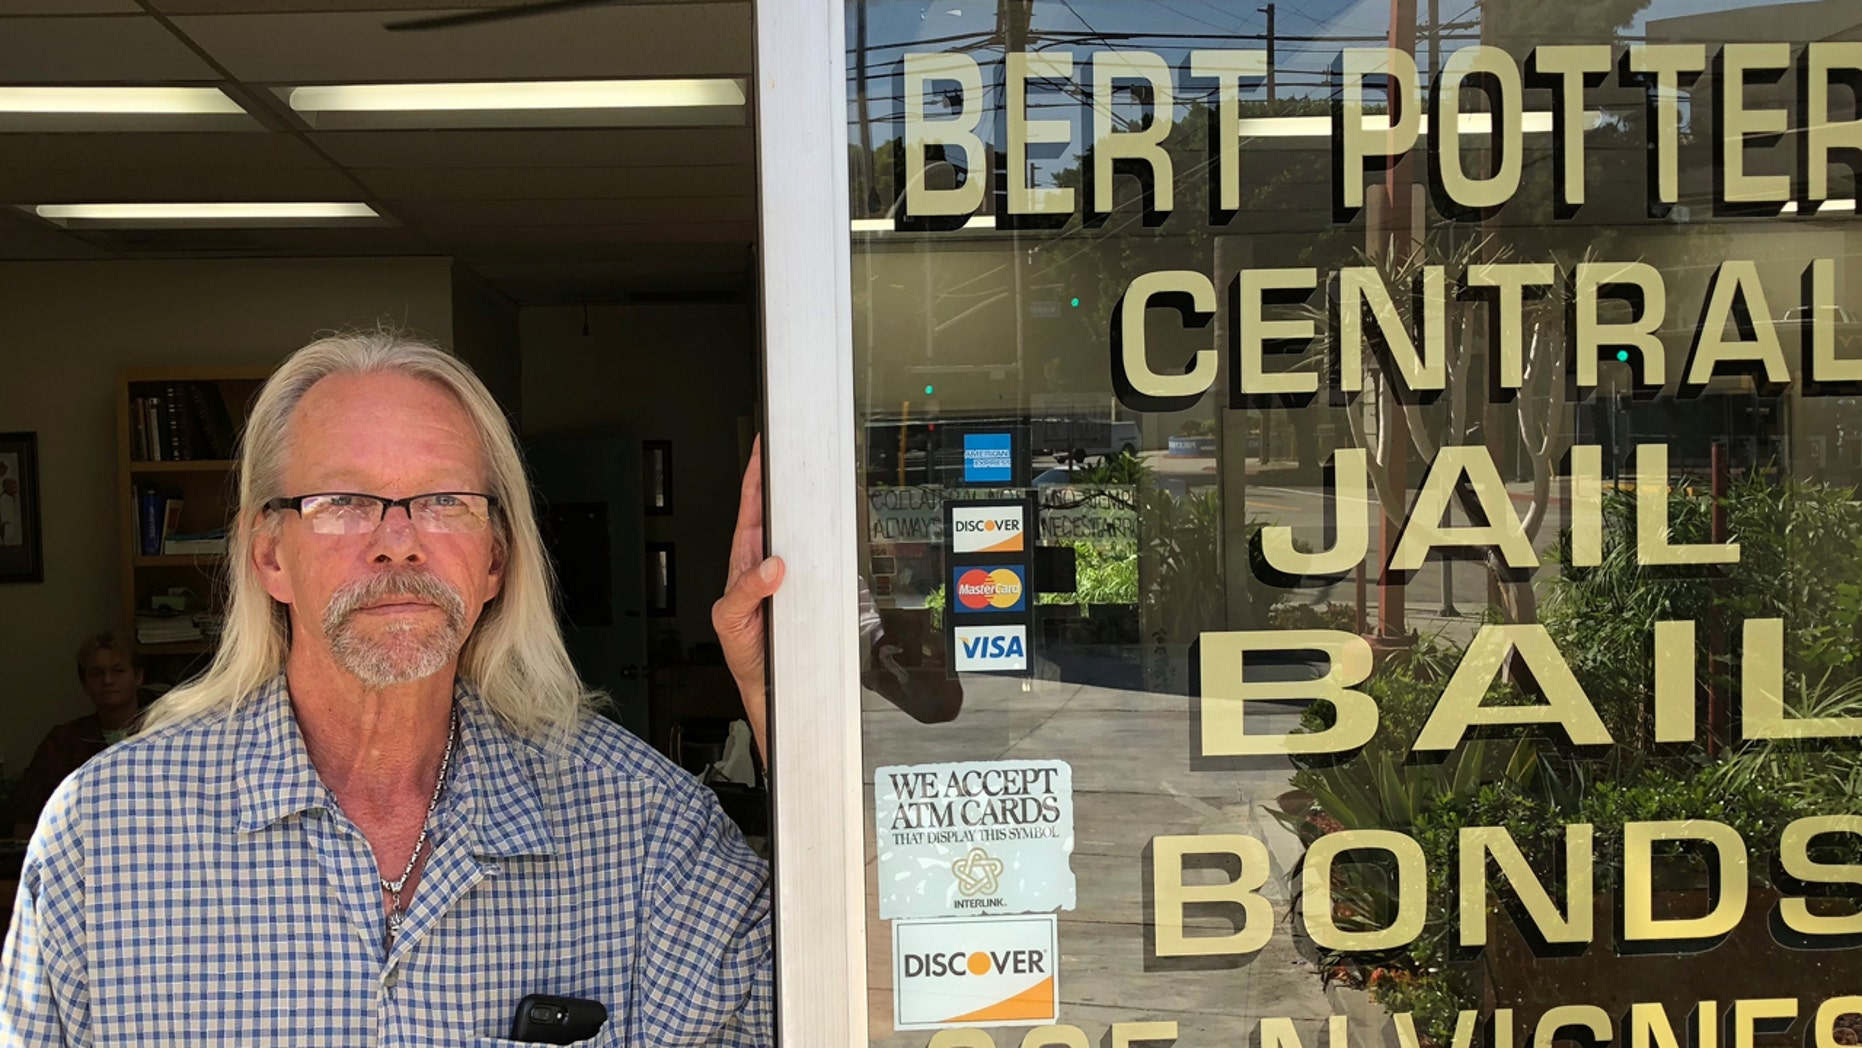 Clay Potter, whose father founded Bert Potter Bail Bonds in Los Angeles 54 years ago, doesn't believe California's bail bond industry will be able to survive, after Gov. Jerry Brown signed a bill earlier this week making California the first state to eliminate bail for suspects awaiting trial.